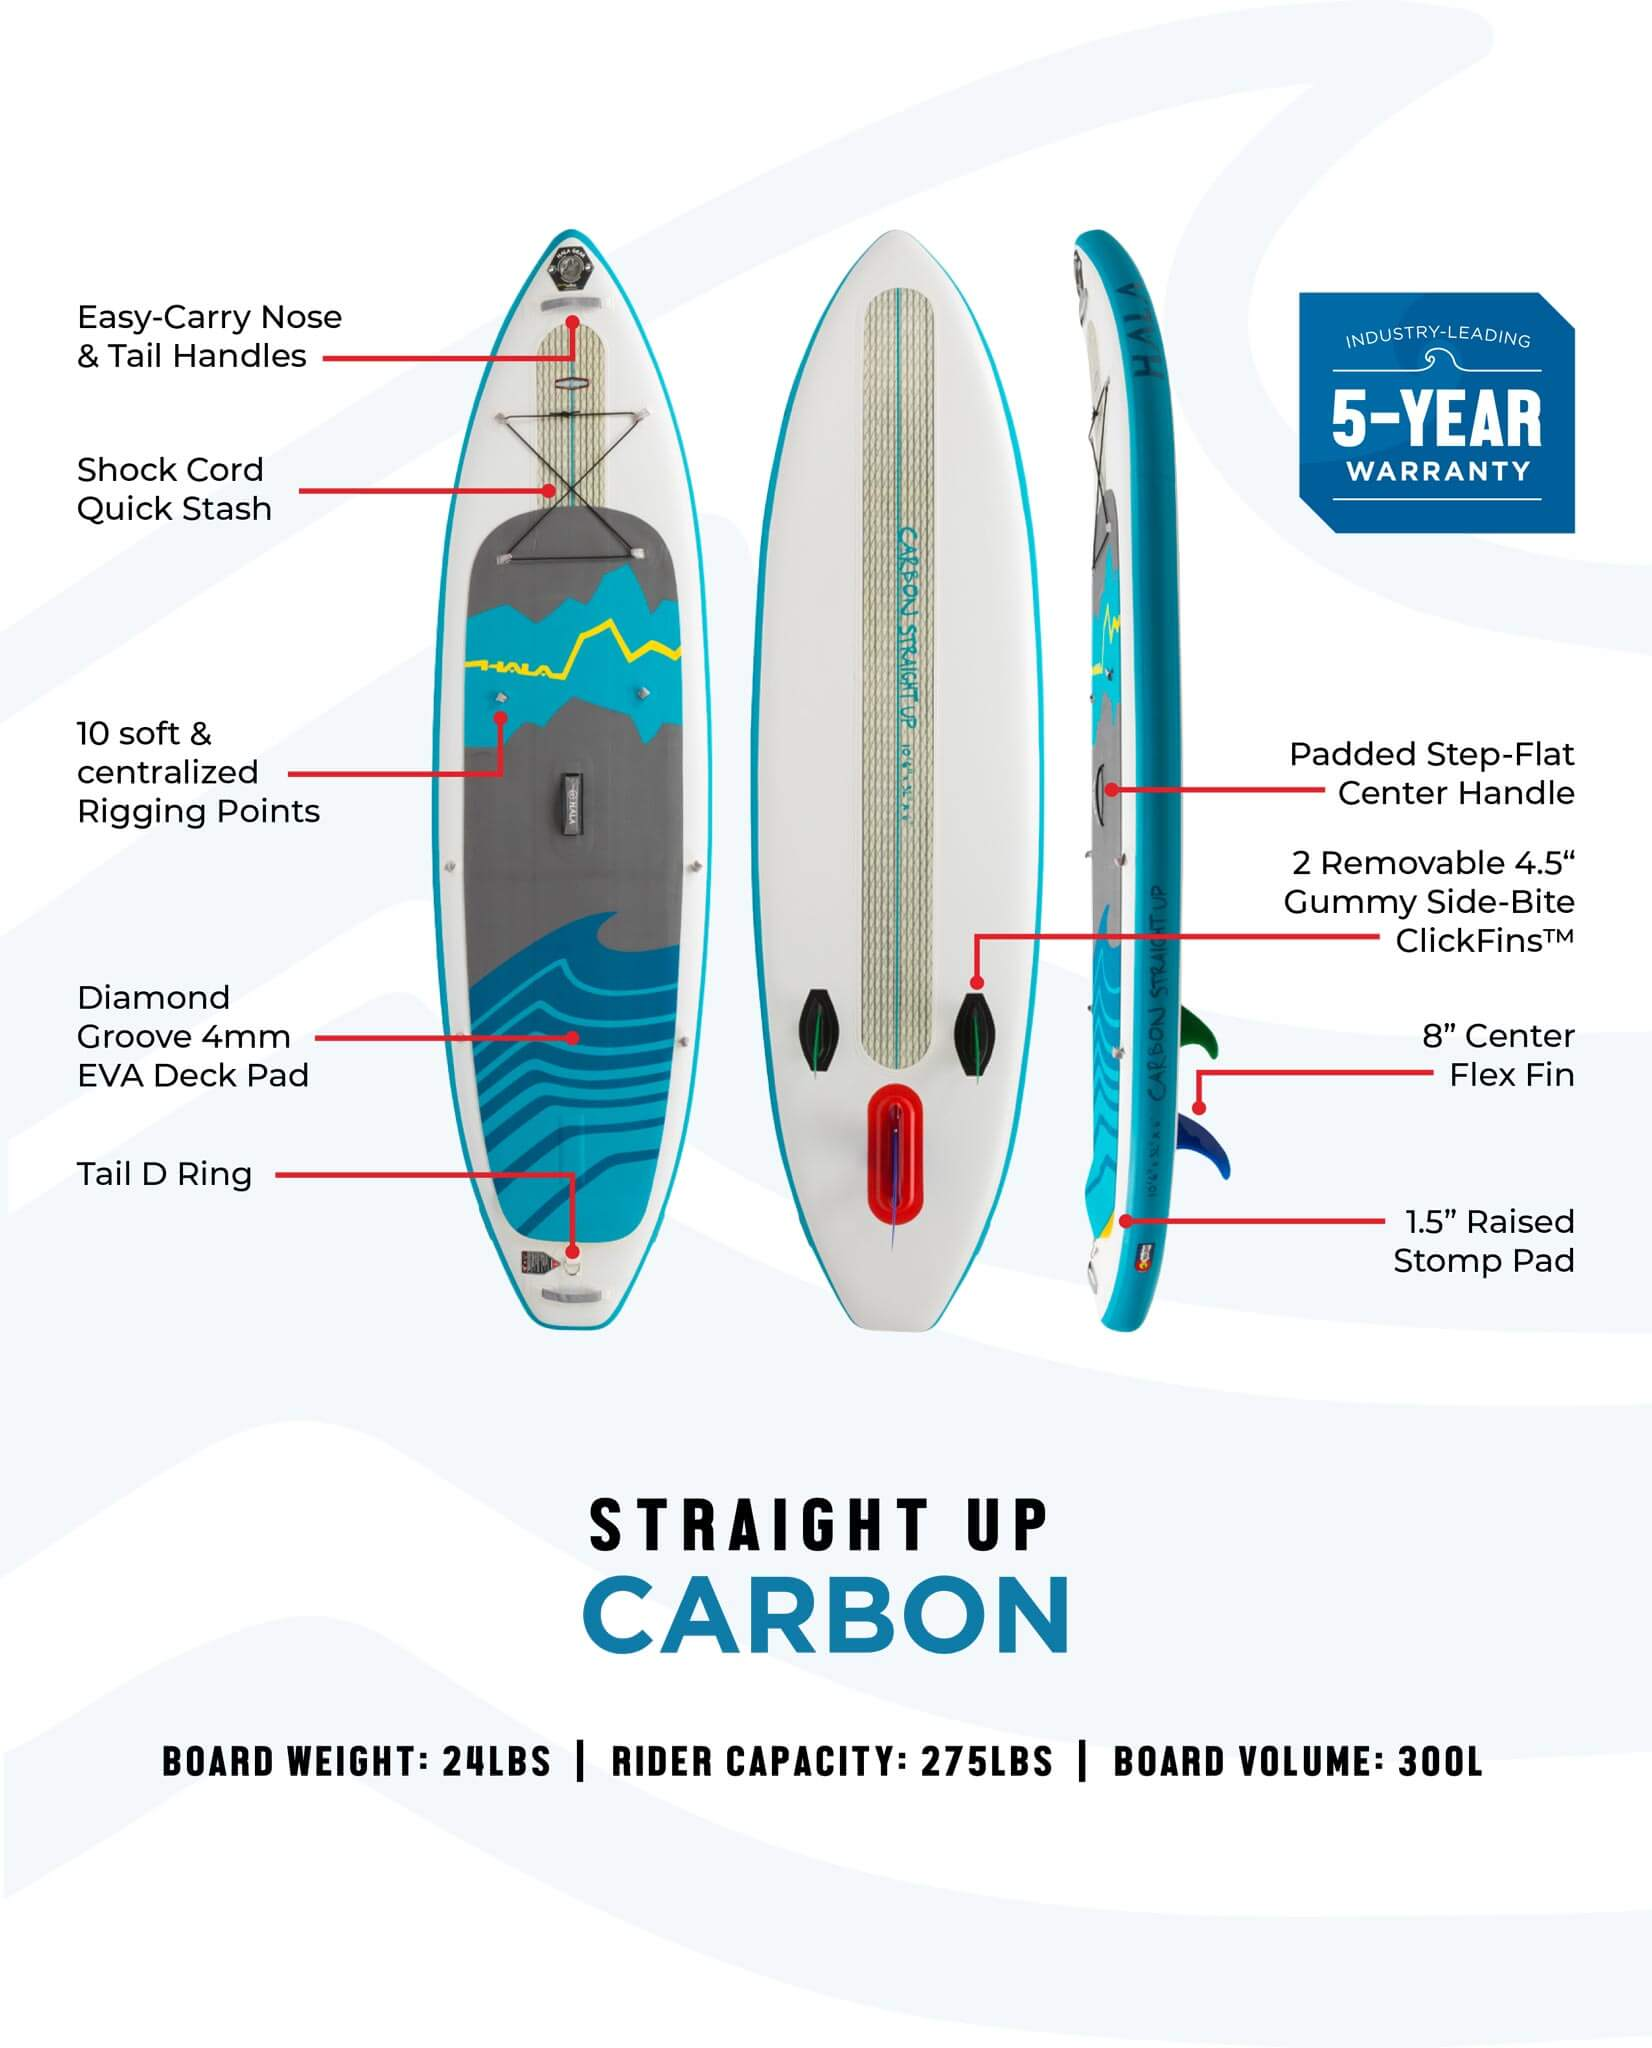 easy-carry nose and tail handles. Shock cord quick stash. 10 soft and centralized rigging points. Diamond groove 4mm eva deck pad. Tail d ring. Padded step-flat center handle. 2 removable 4.5